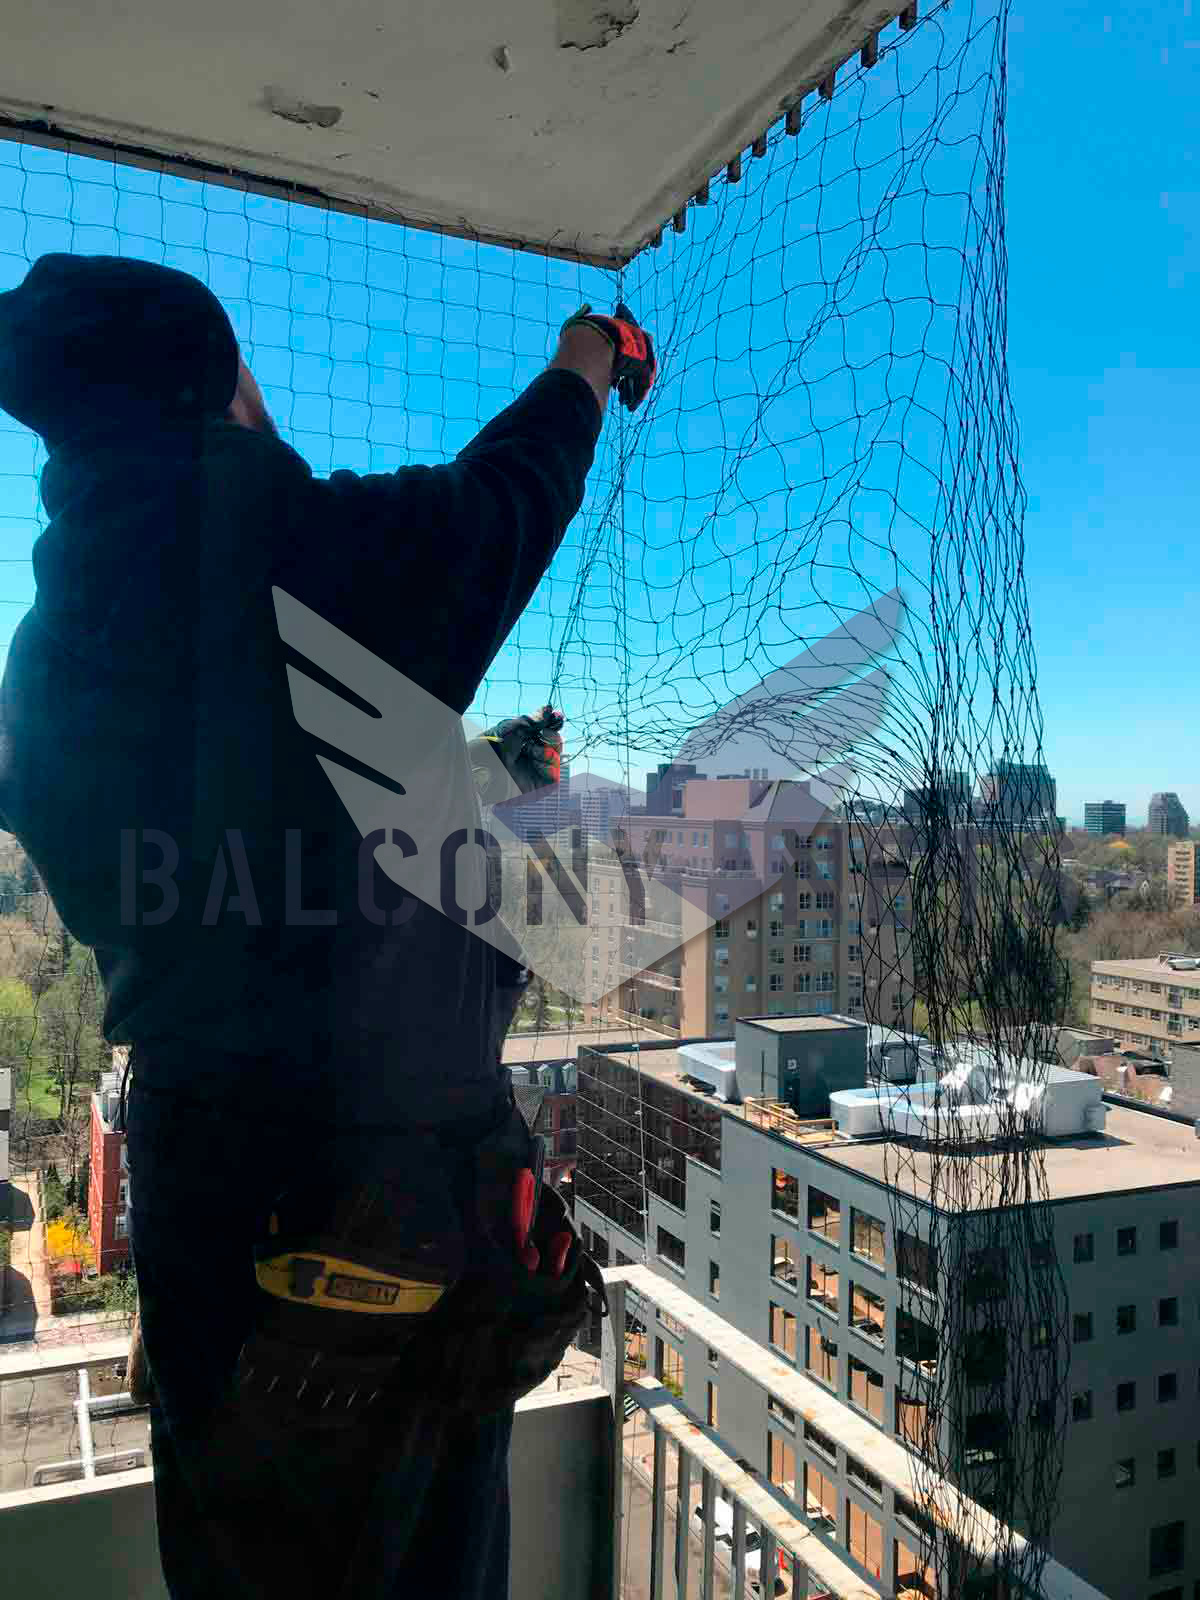 About Balcony Nets